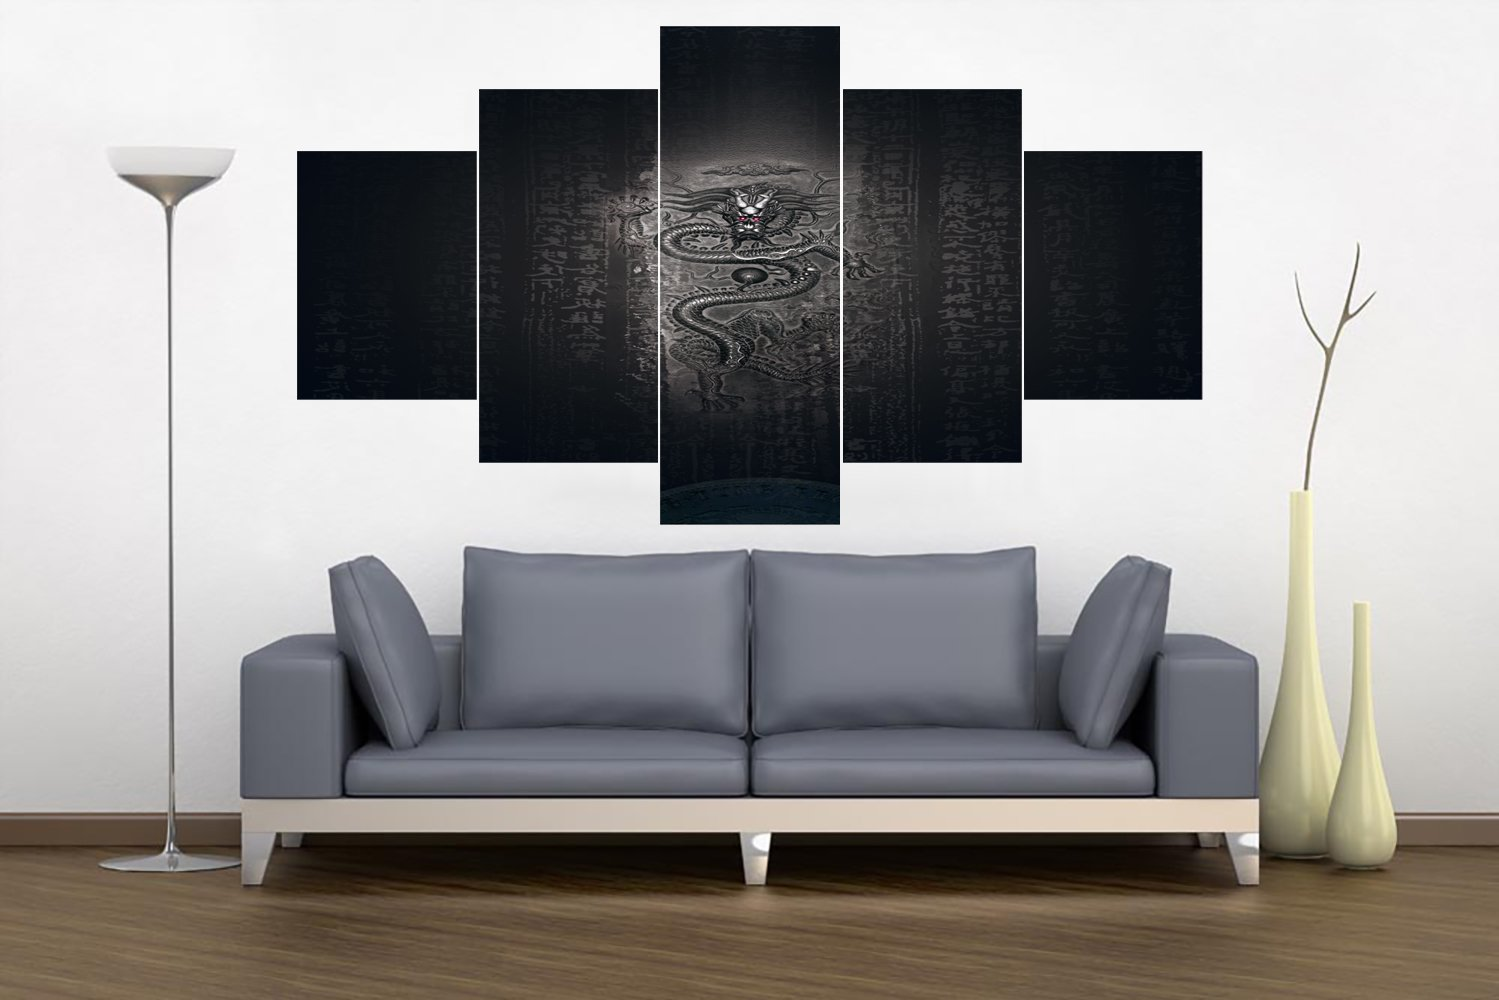 Extra Large Wall Art 5 Panel Cultural Religion Dragon Painting on Canvas Wood Framed Ying Yang Black White Modern Abstract Multi panel Artwork Home Decor for Home Living Ready to Hang(60''Wx40''H)